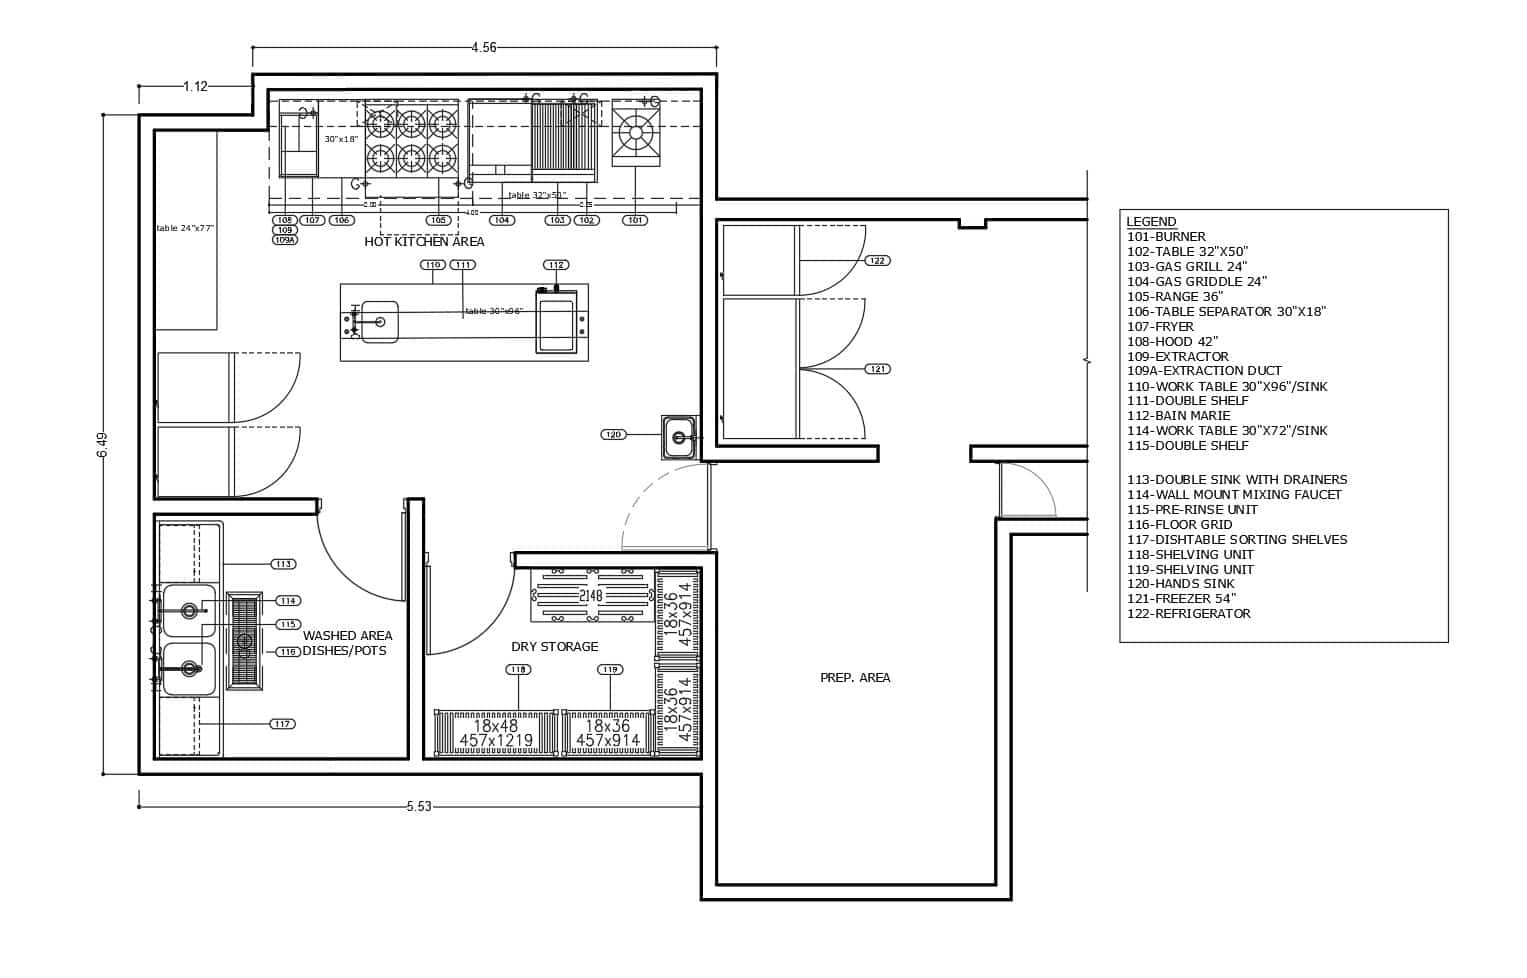 Architectural design of a small commercial kitchen that could be designed for a home or small business